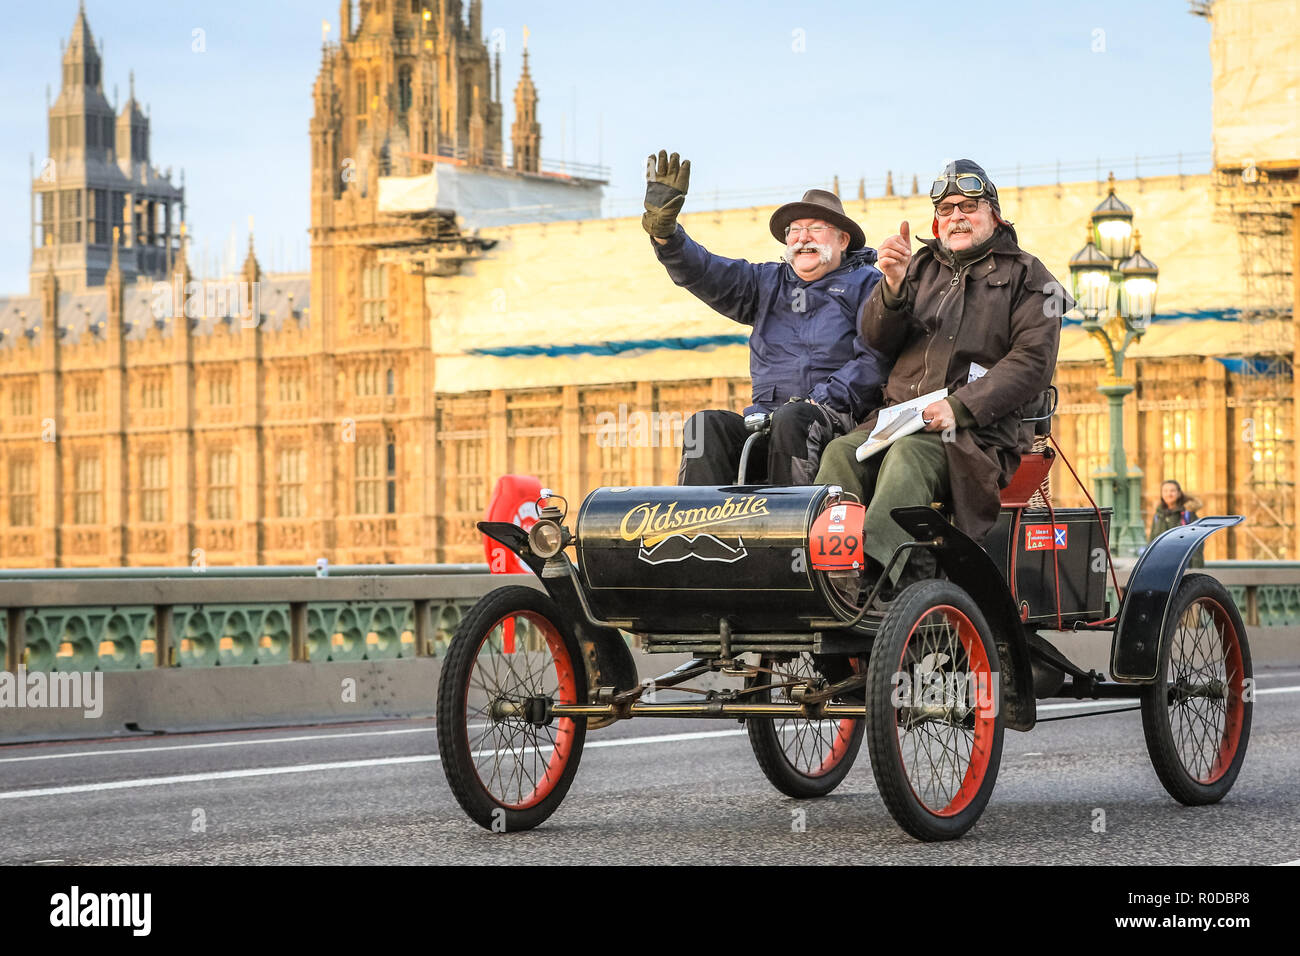 Westminster Bridge, London, UK, 4th Nov 2018. A 1902 Oldsmobile. The World's longest running motoring event, Bonhams London to Brighton Veteran Car Run, sets of from Hyde Park and along Constitution Hill by Buckingham Palace, the Mall and Admiralty Arch, then along a 60 mile route all the way to Brighton. It is this year in its 122nd anniversary run. More than 400 of the veteran cars are from the pre-1905 era. Credit: Imageplotter News and Sports/Alamy Live News - Stock Image